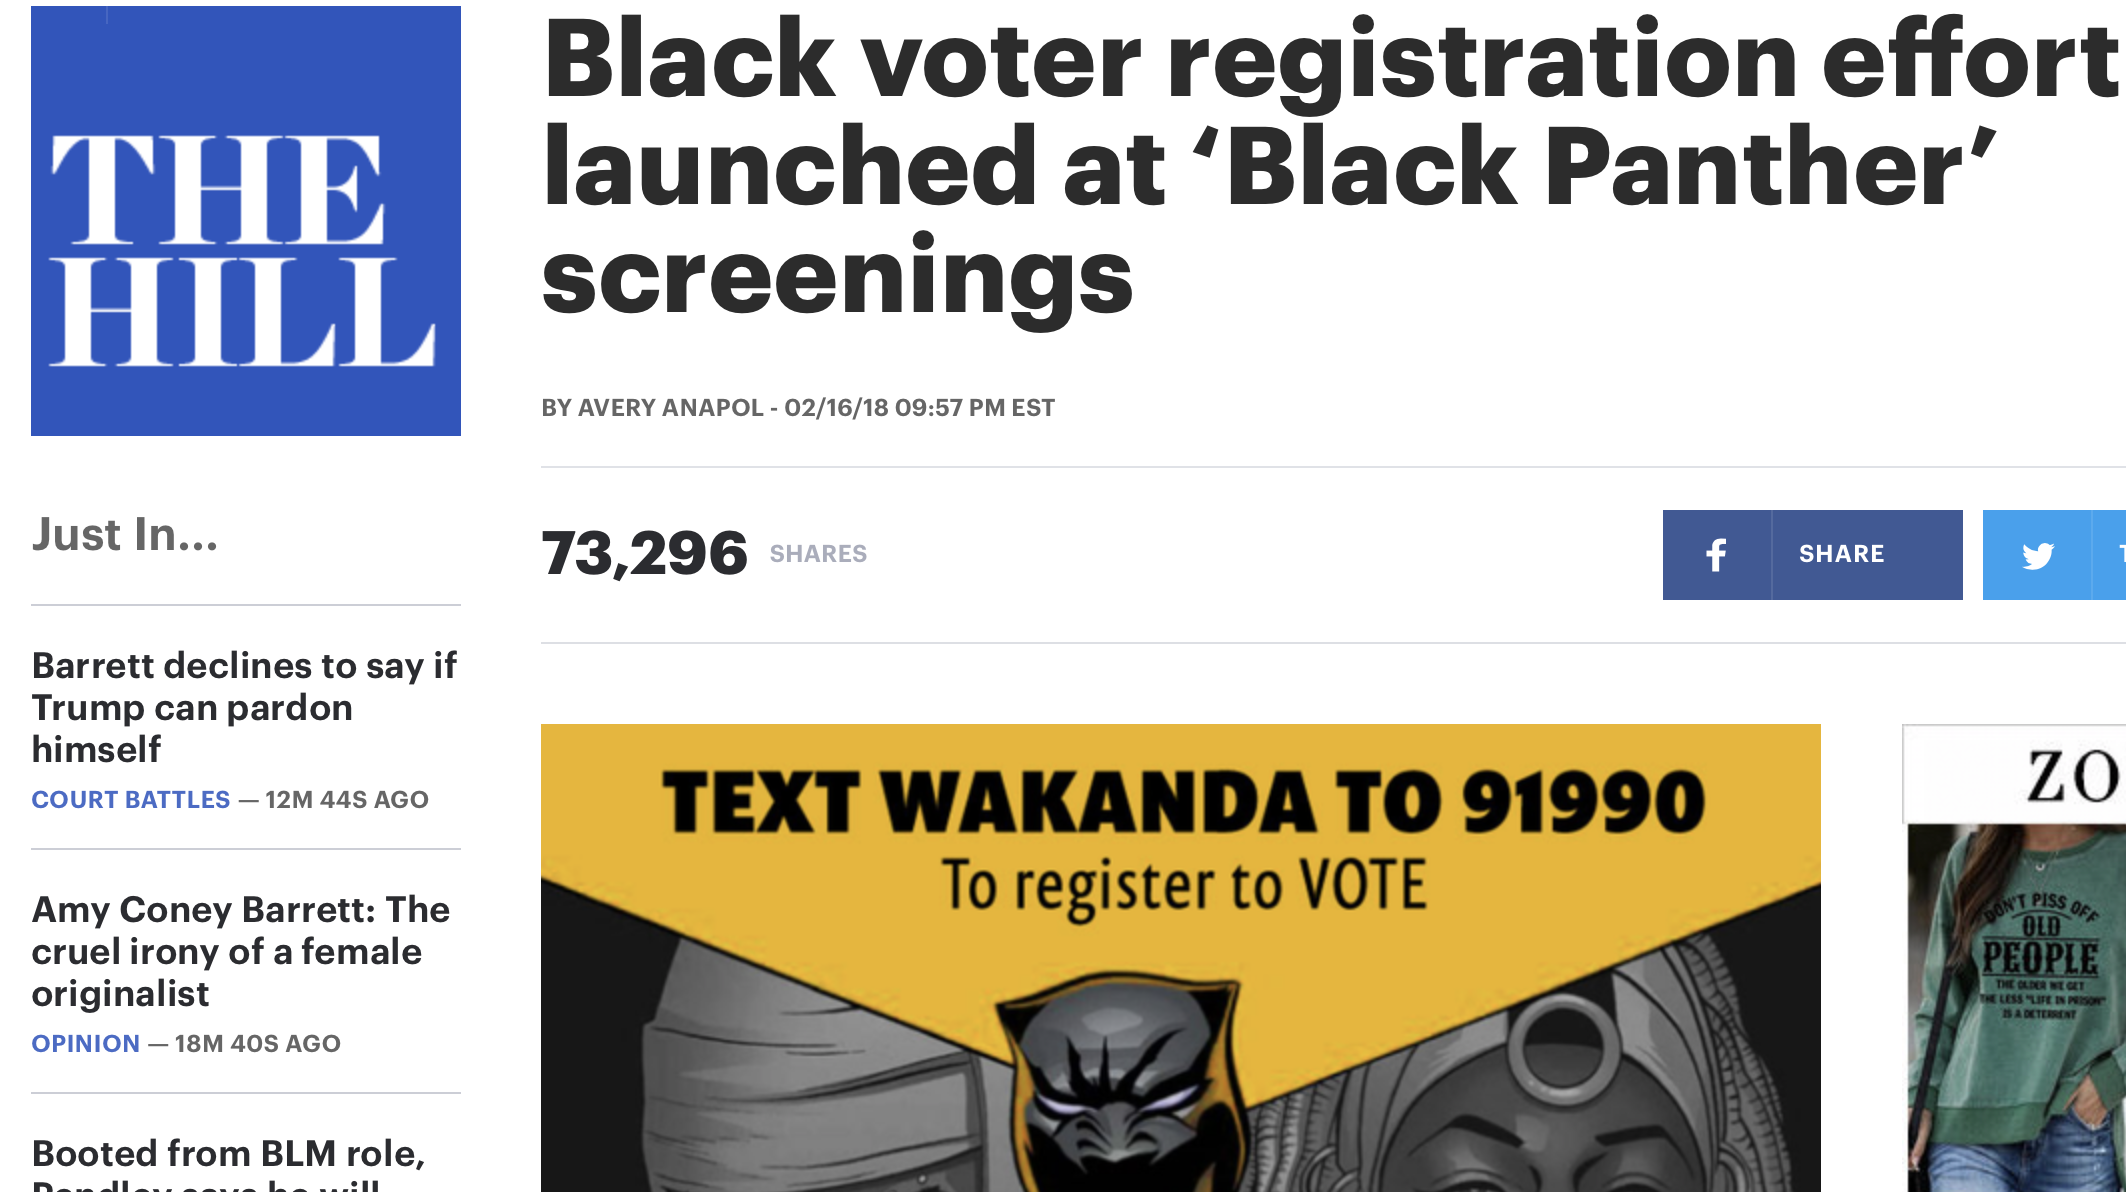 Black voter registration effort launched at 'Black Panther' screenings